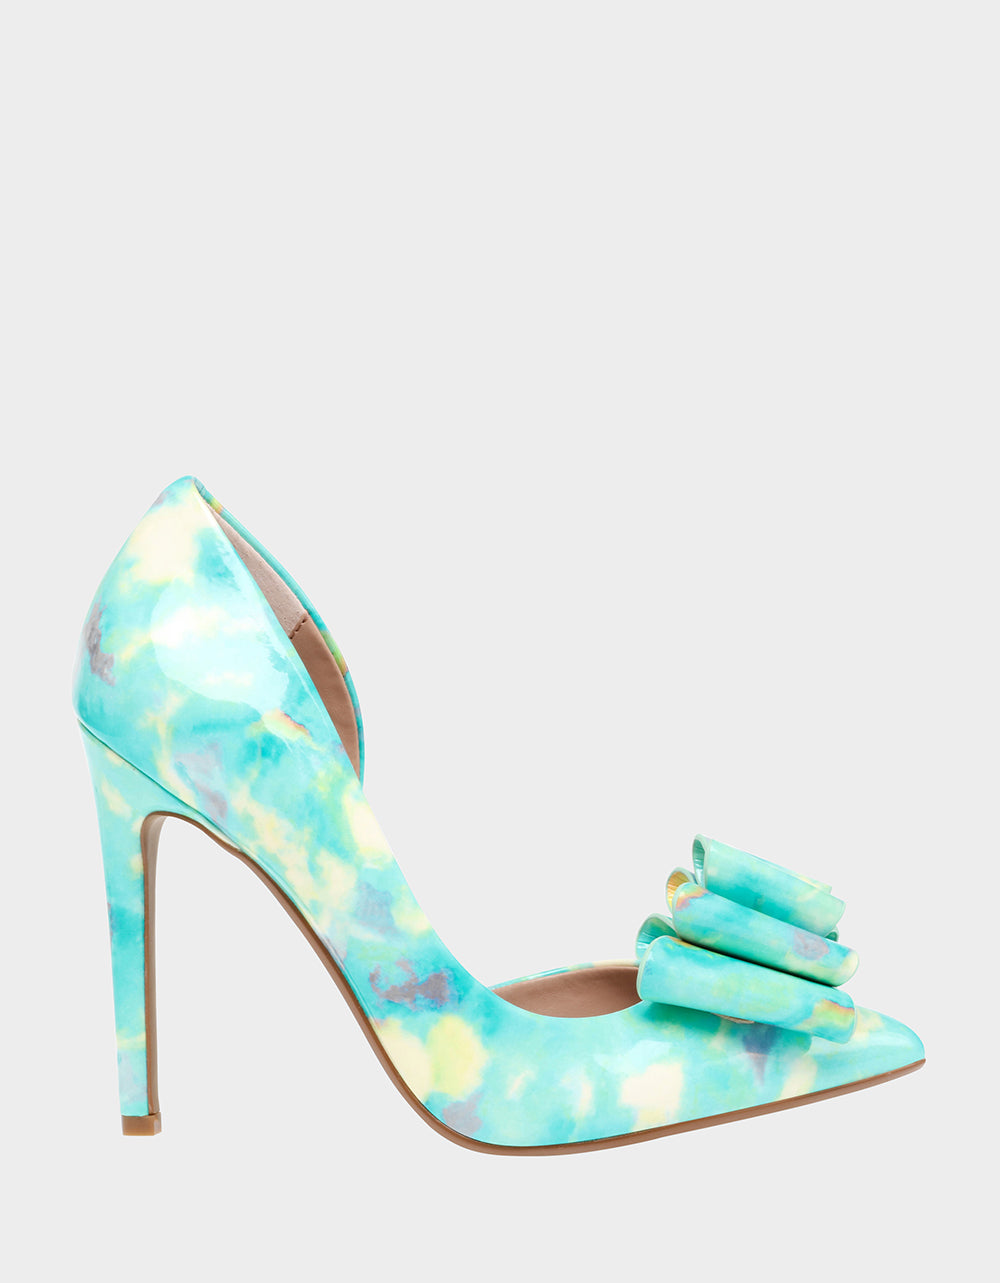 PRINCE-P TURQUOISE MULTI - SHOES - Betsey Johnson